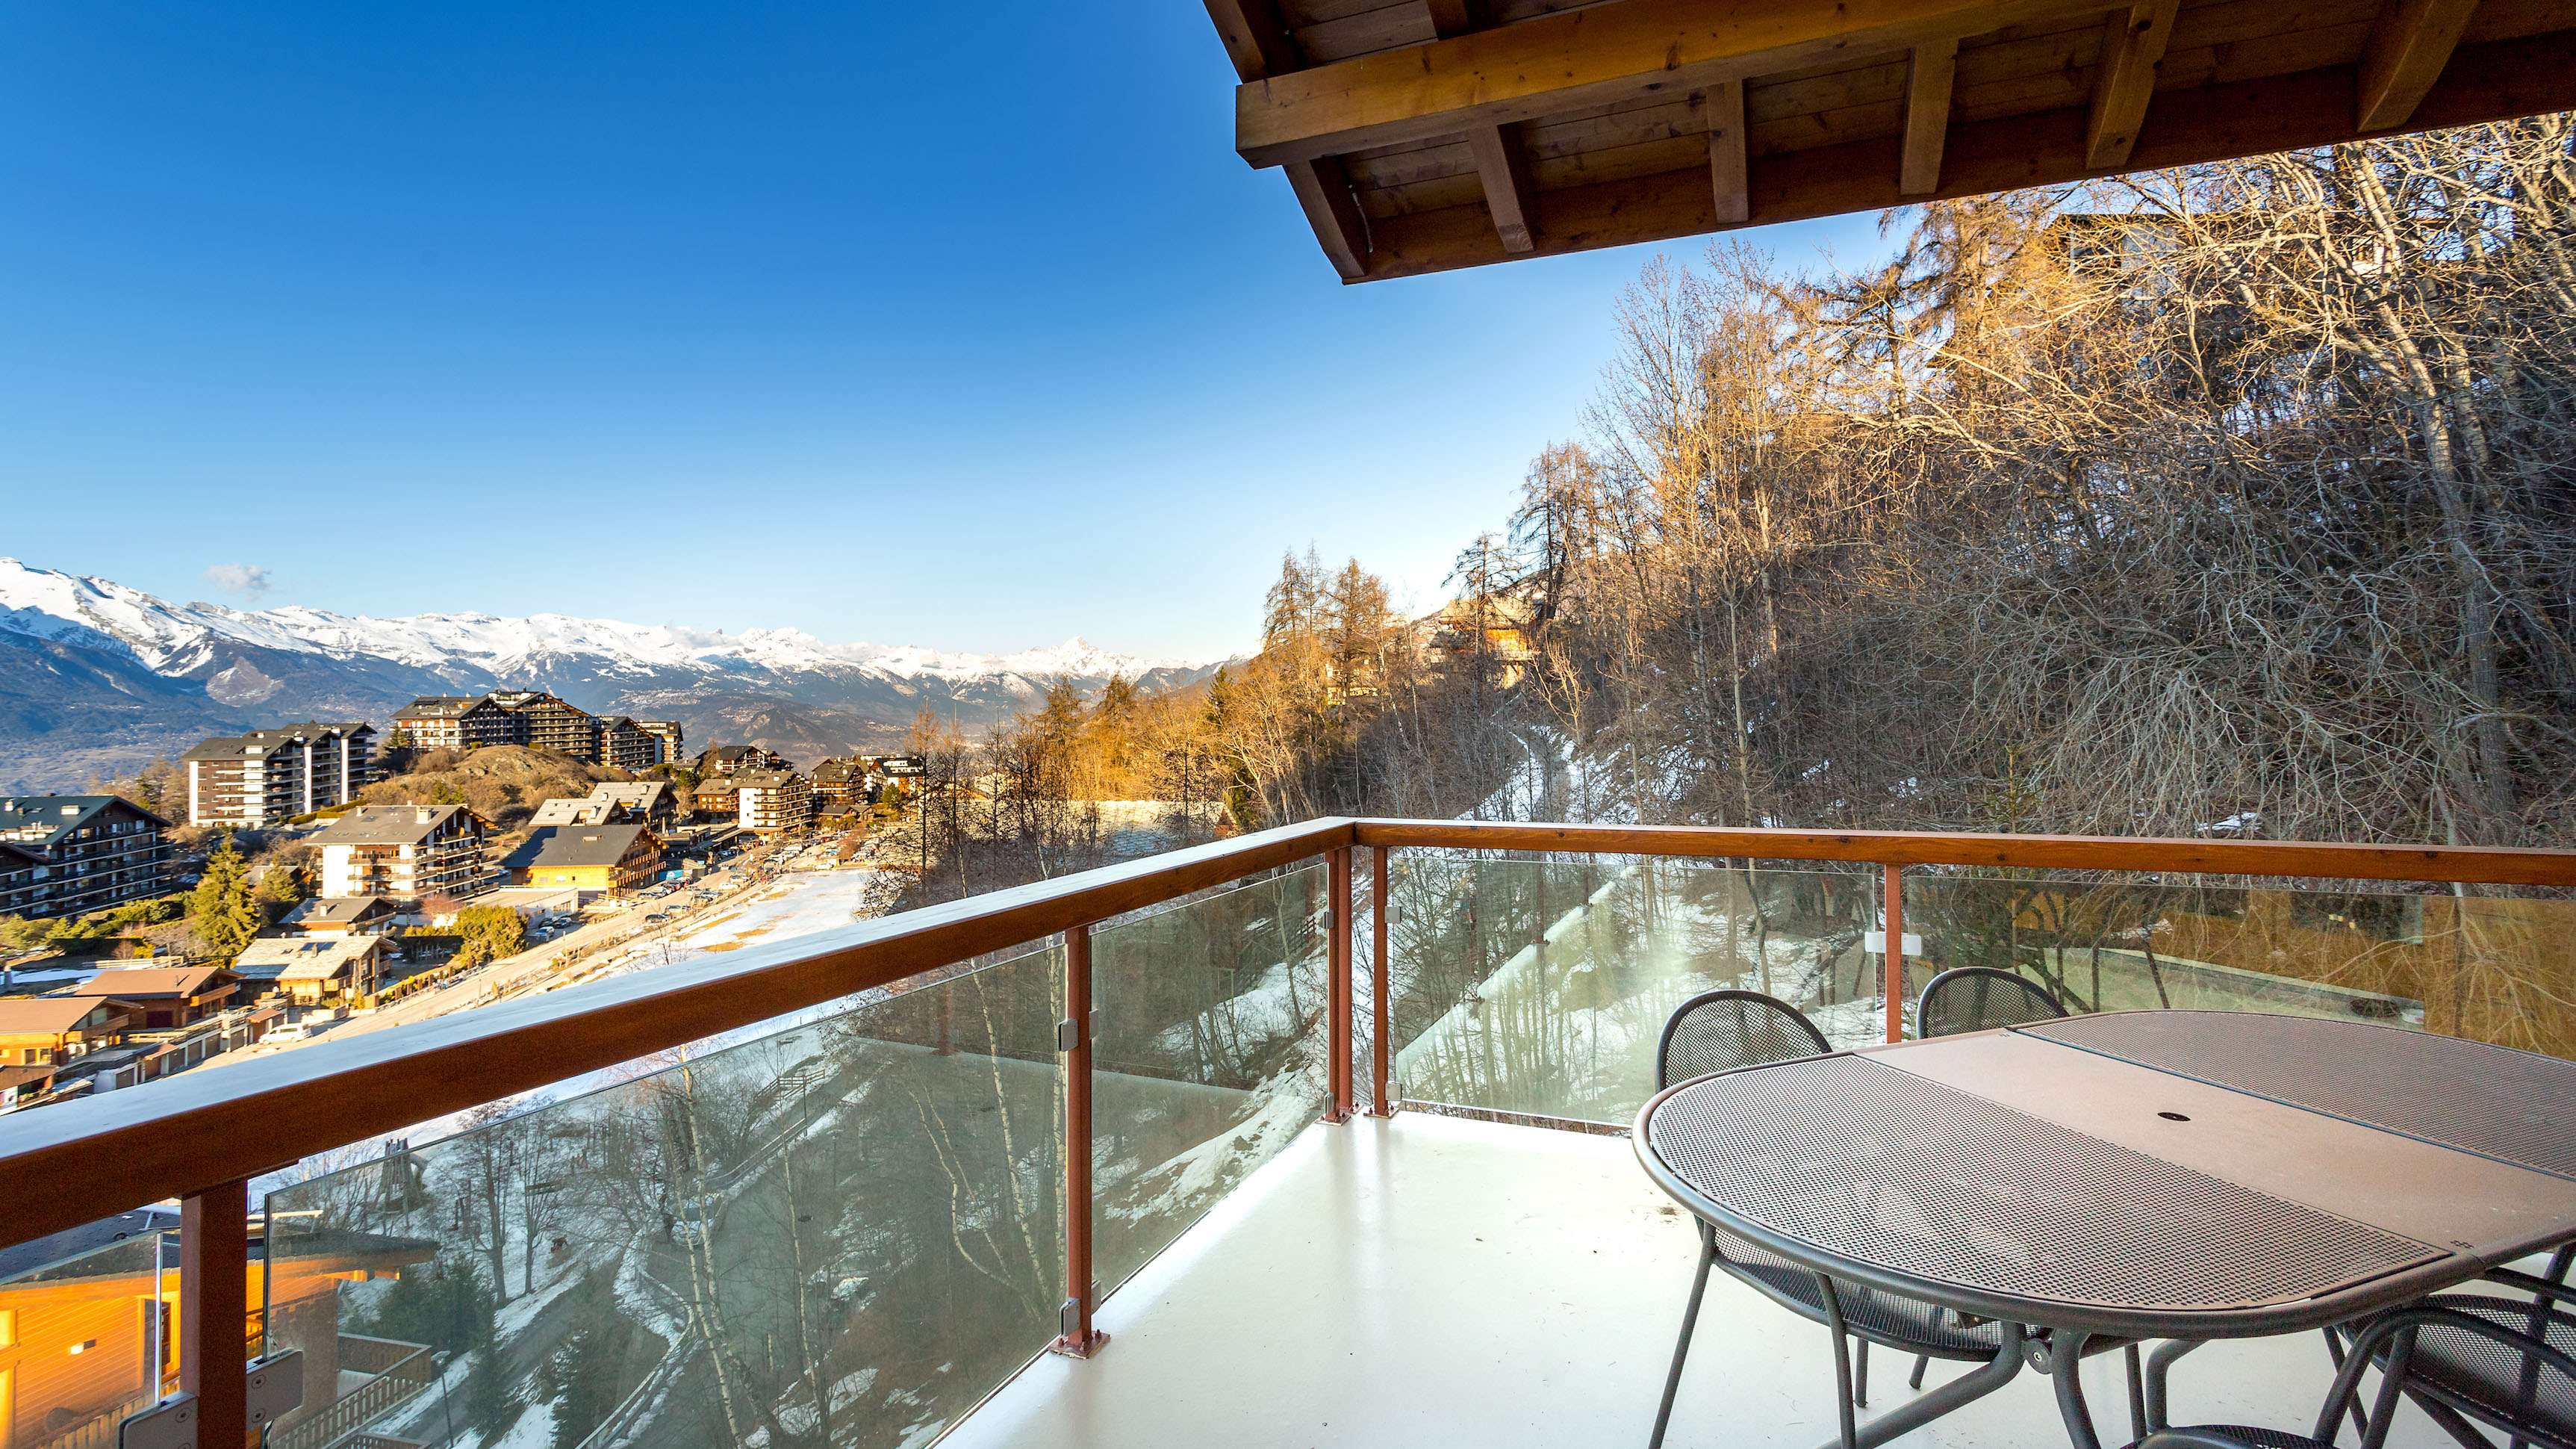 Domaine des Reines Apartments, Switzerland